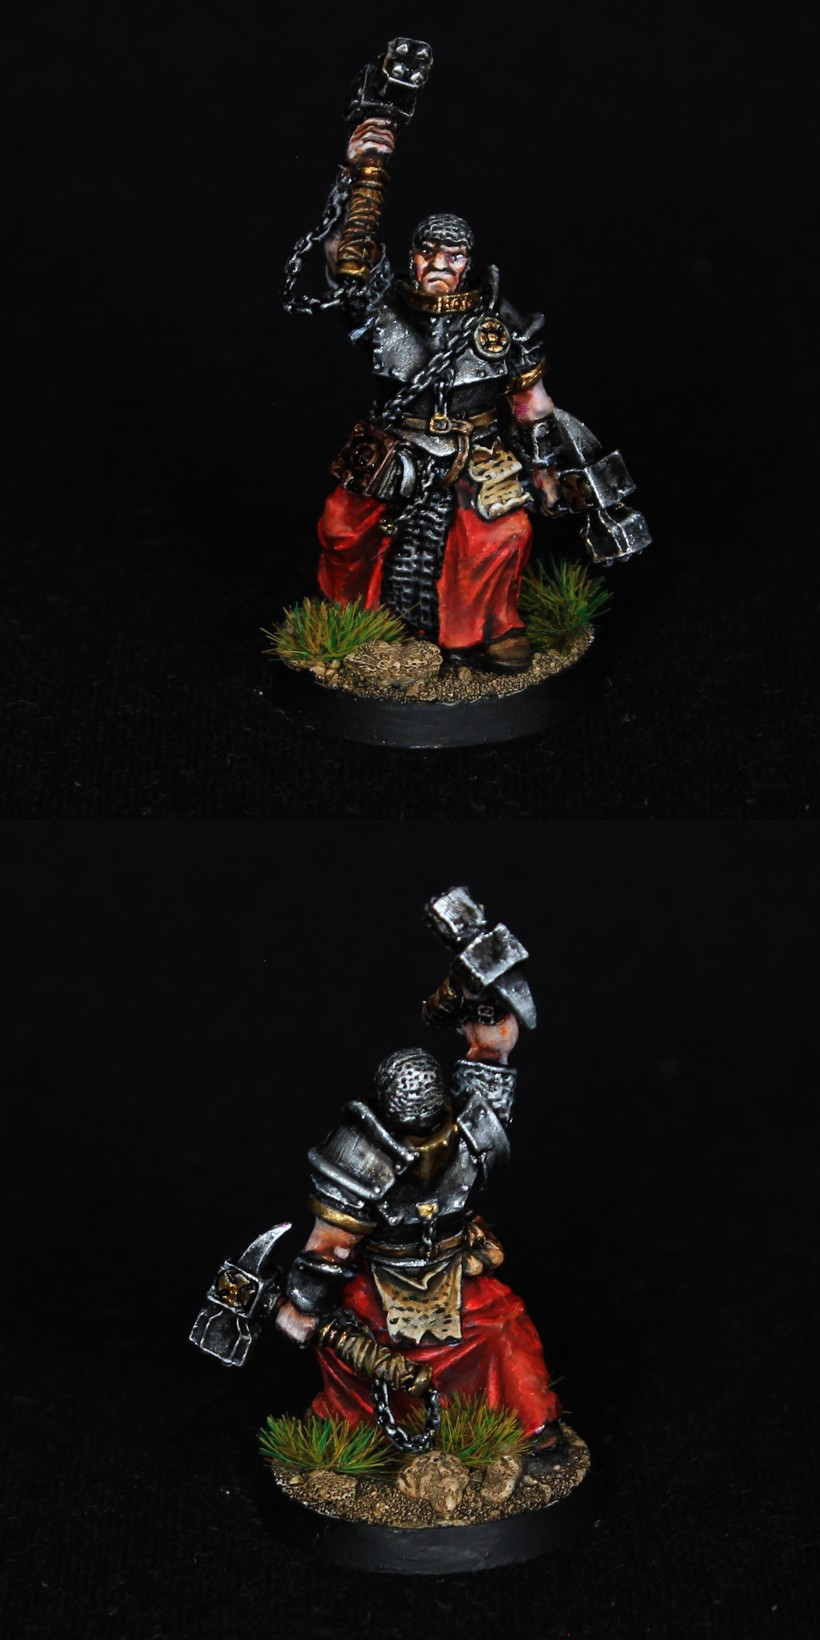 Warrior Priest with two hammers